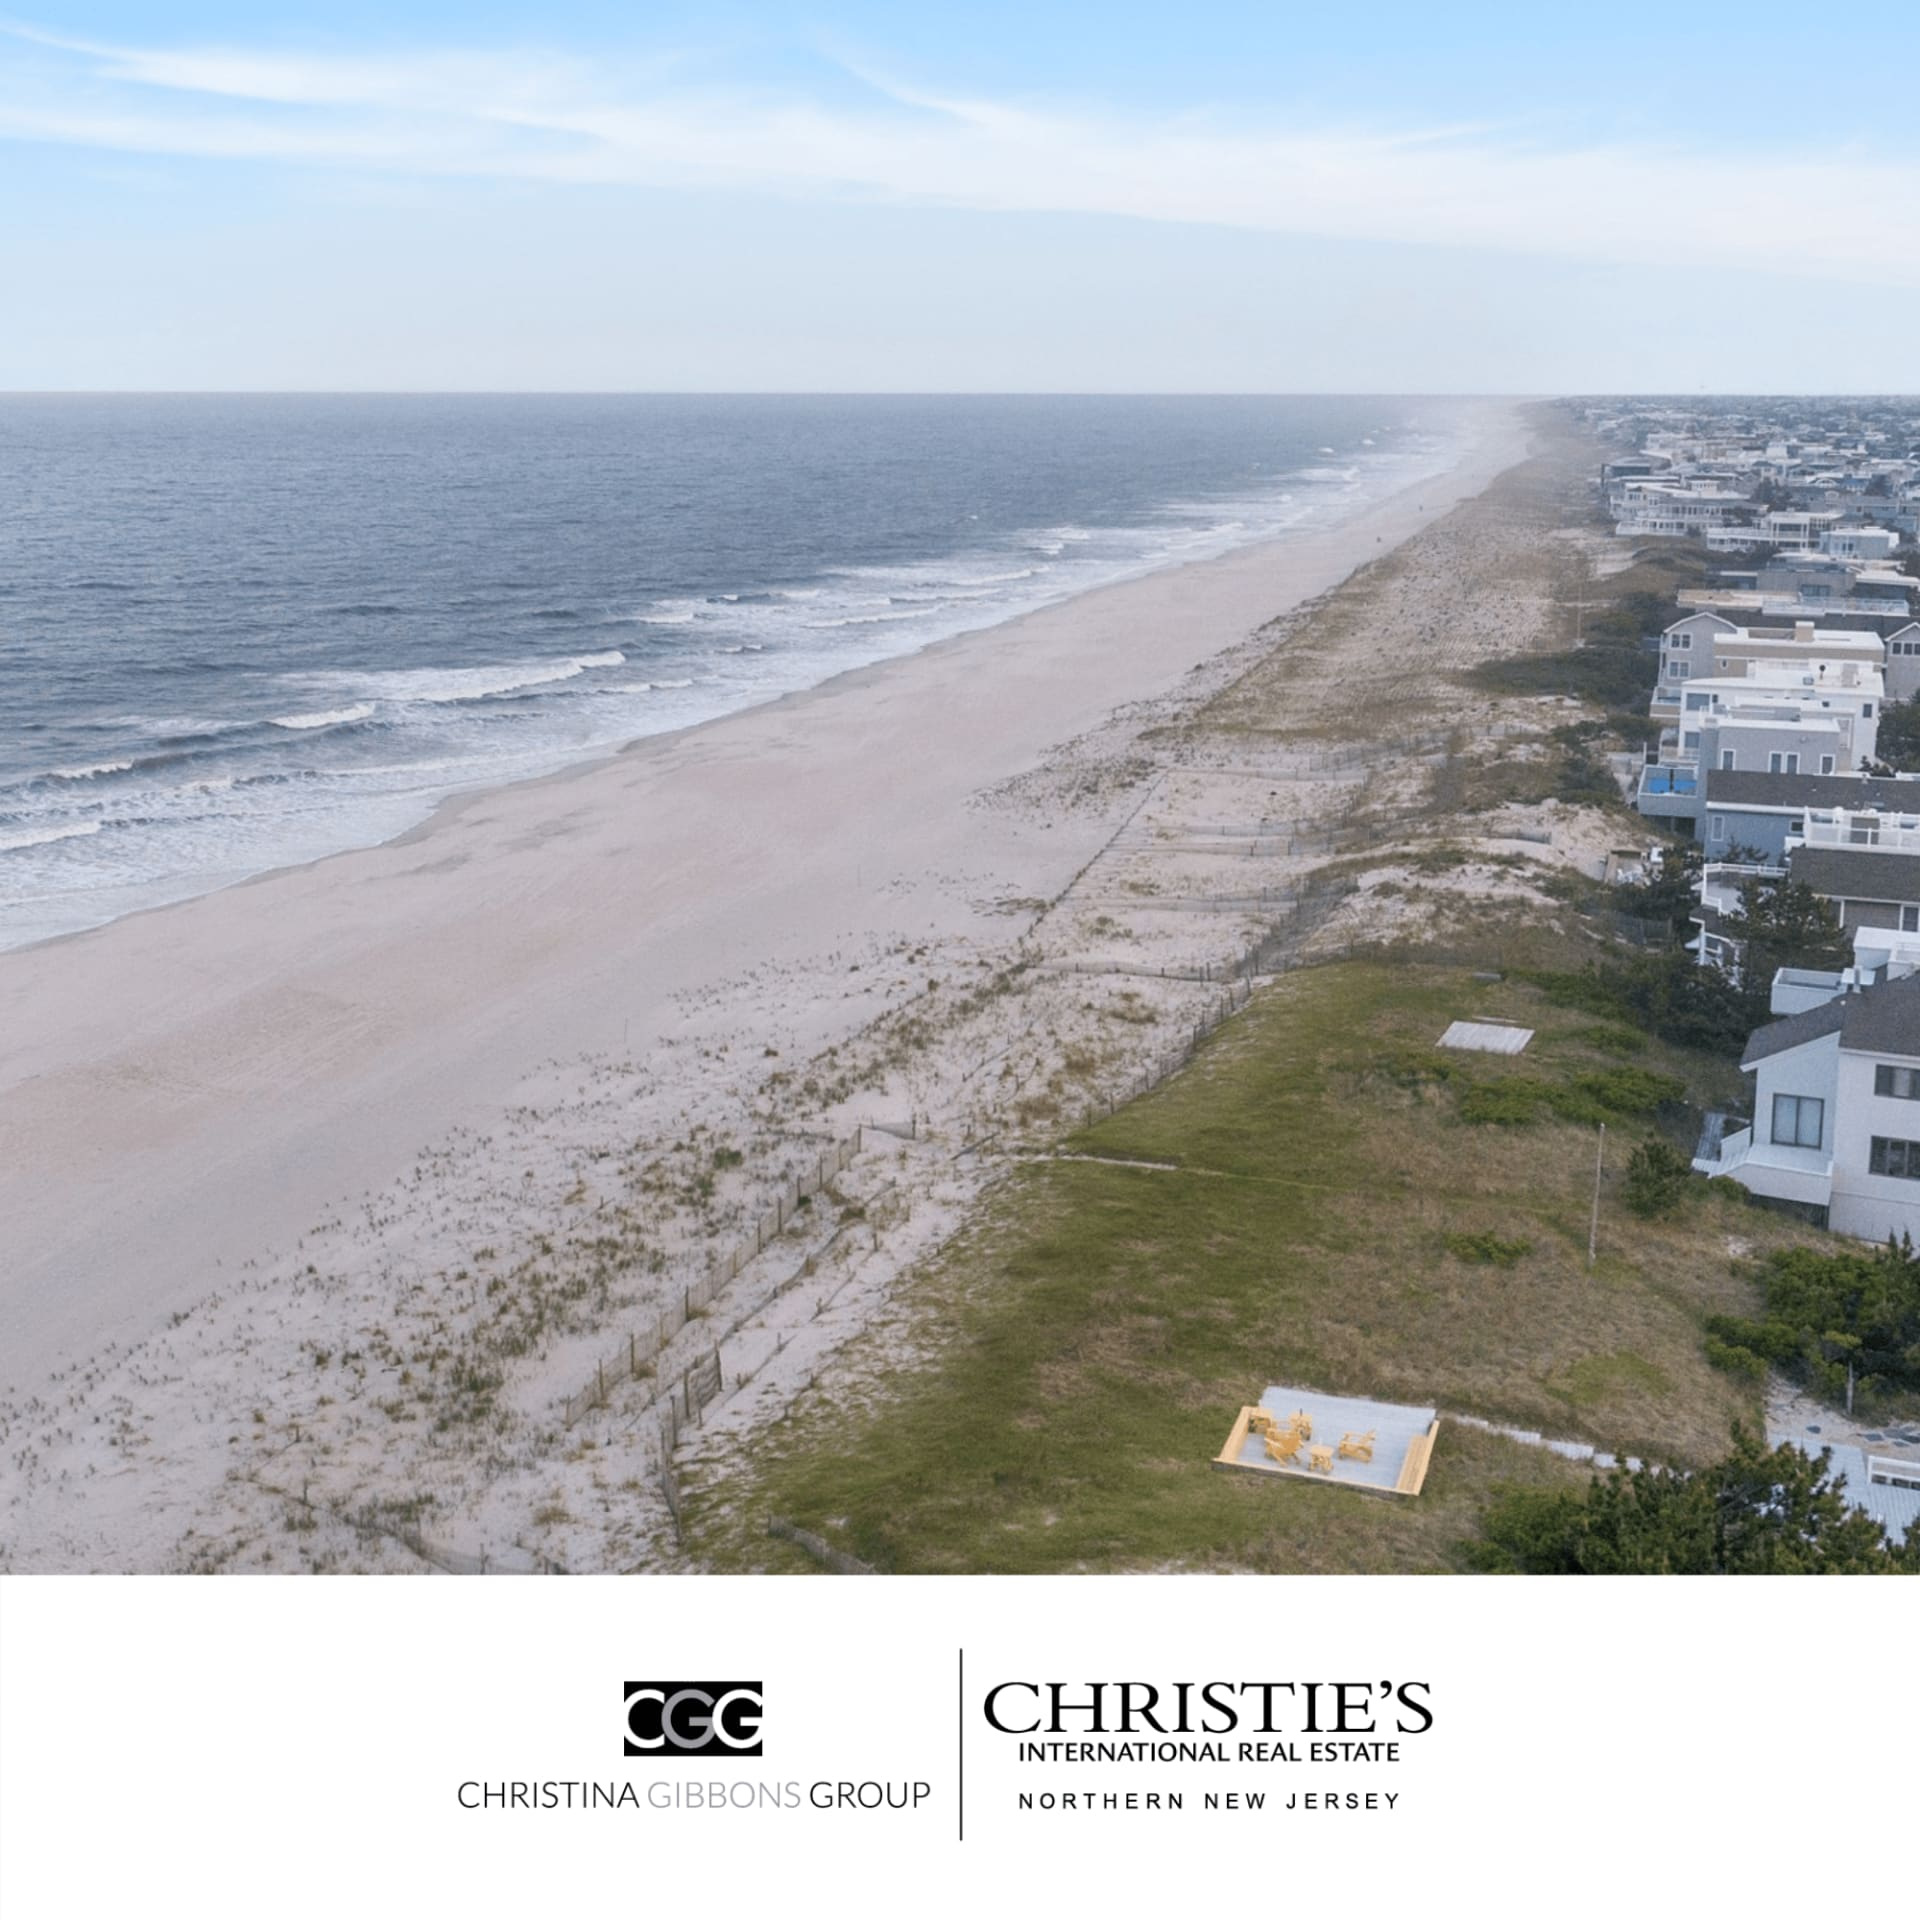 Christina Gibbons Group Launches Expansion to New Jersey Shore